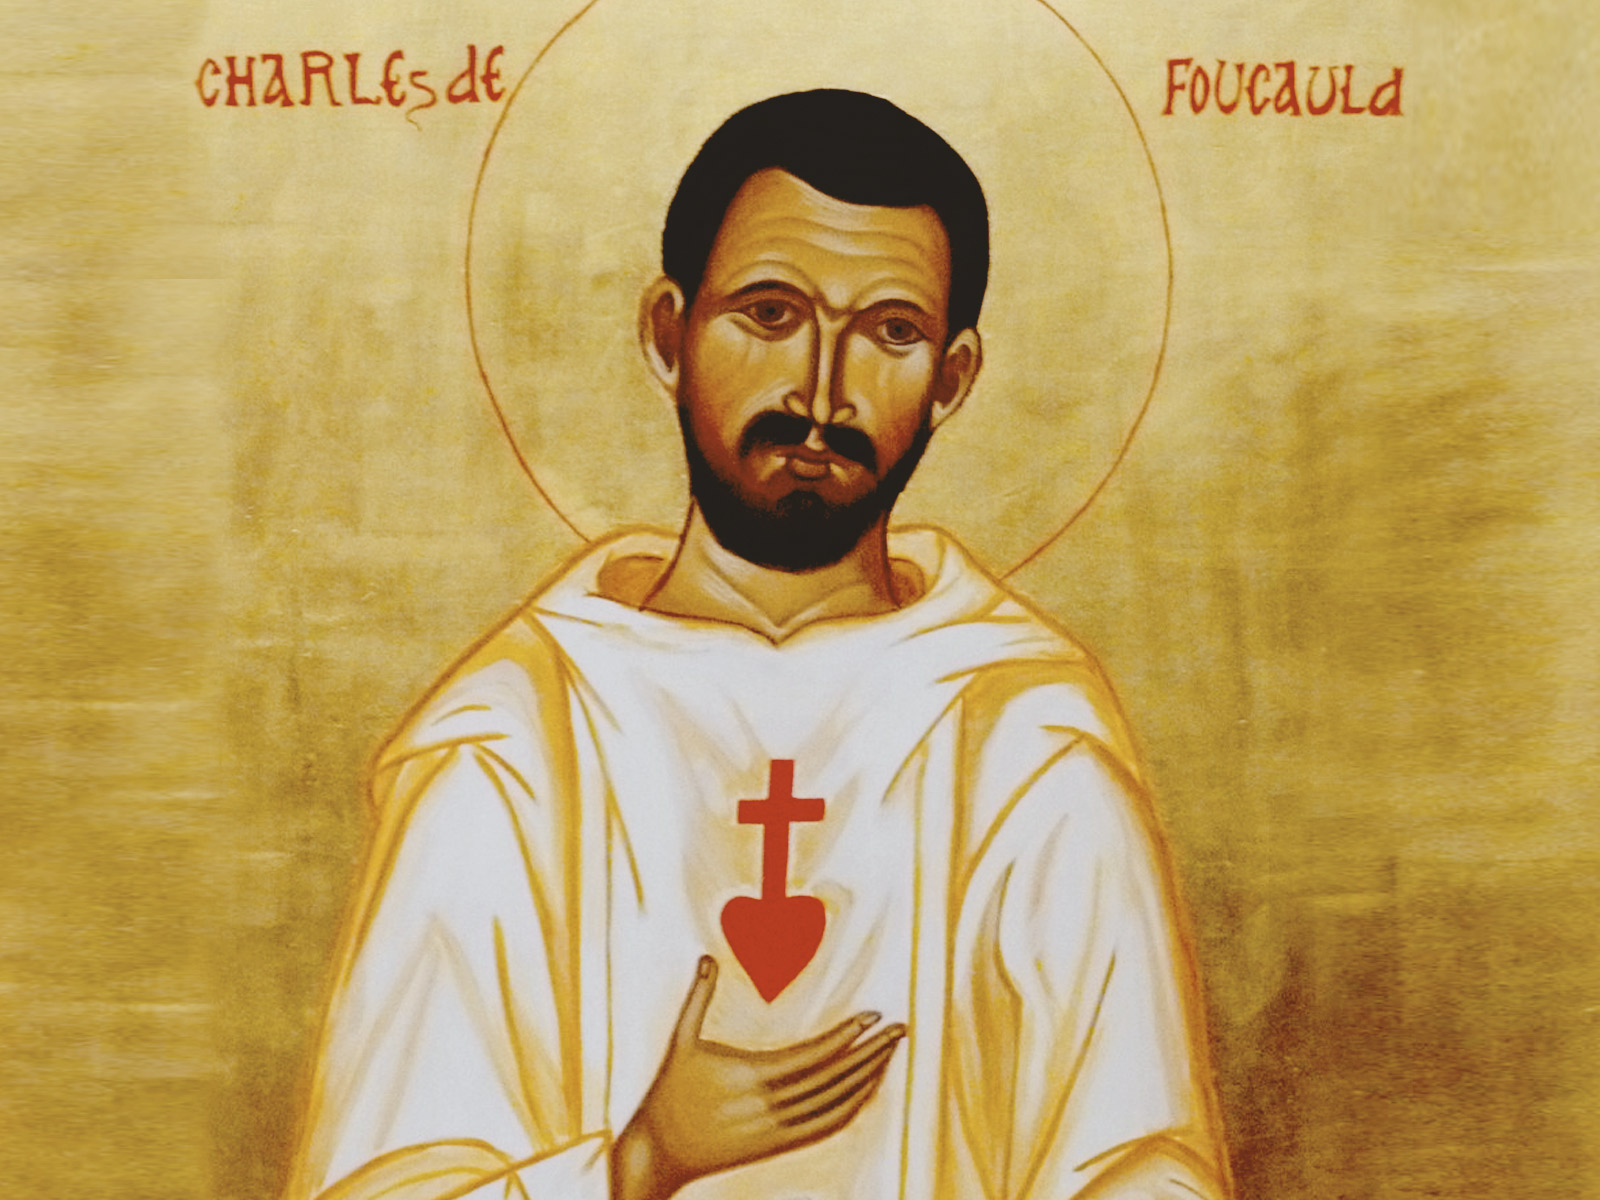 Papa recorda 100 anos do assassinato de Charles de Foucauld